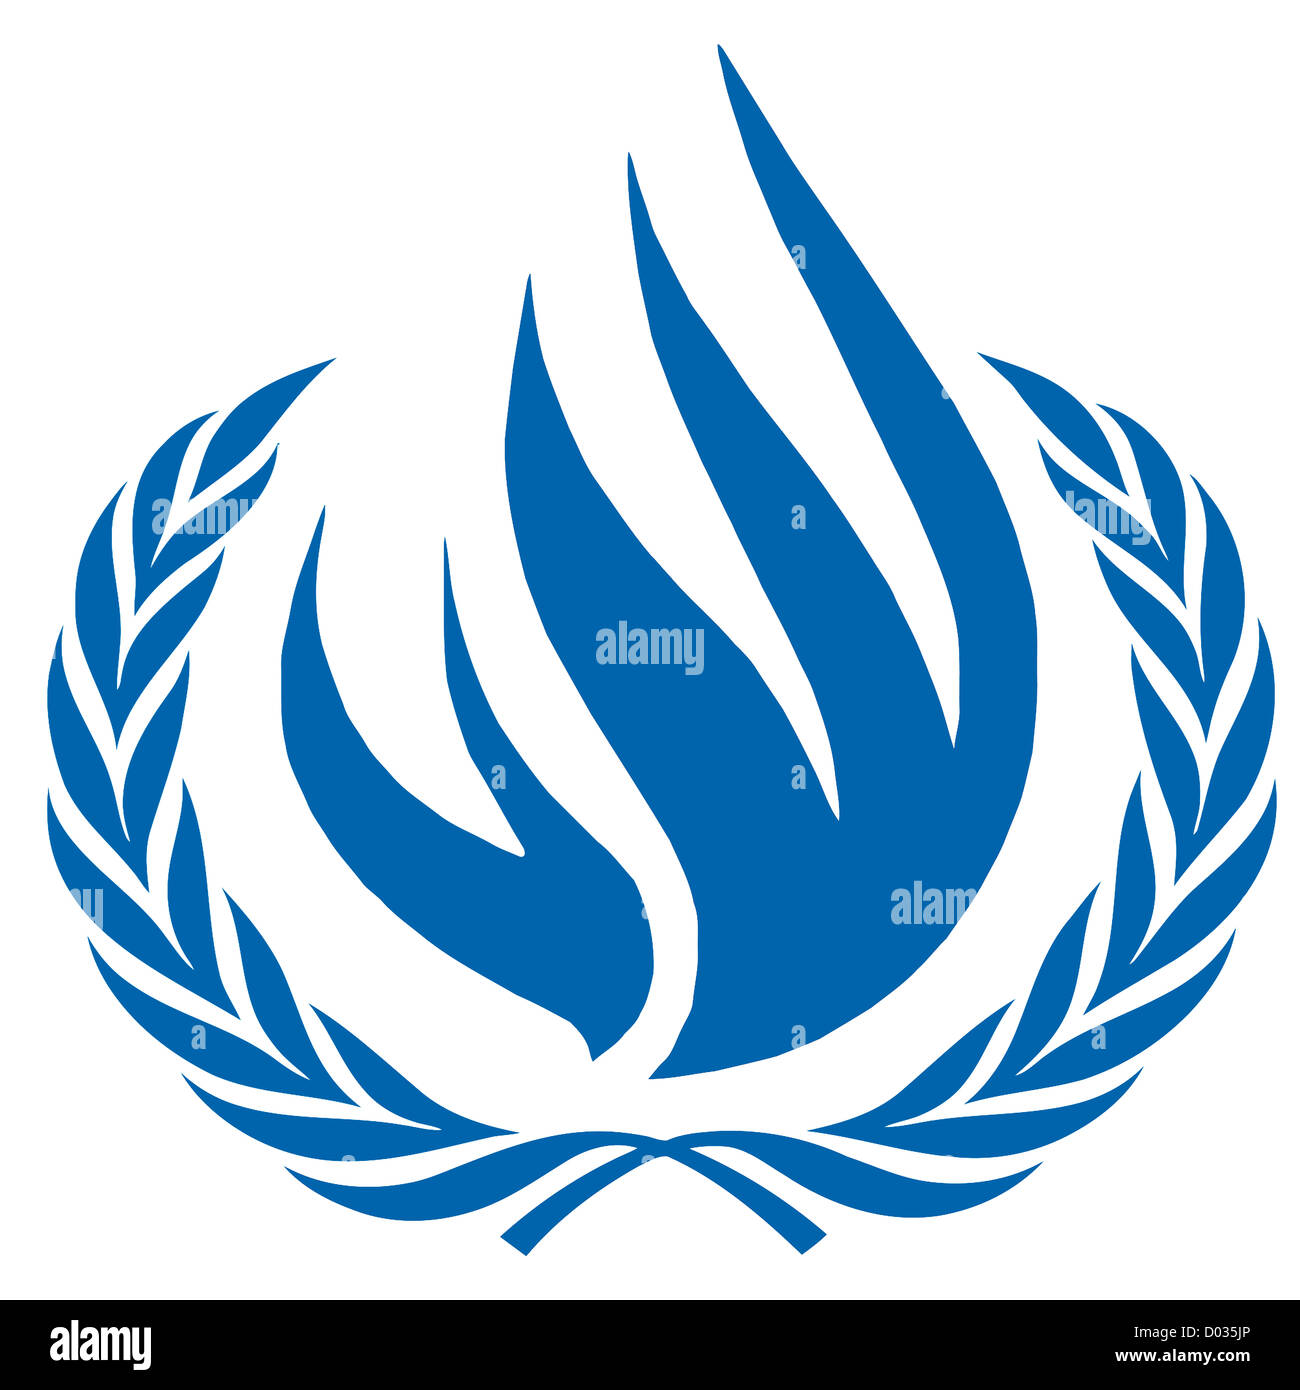 Logo of the Human Rights Council of the United Nations UNHRC with seat in Geneva. - Stock Image